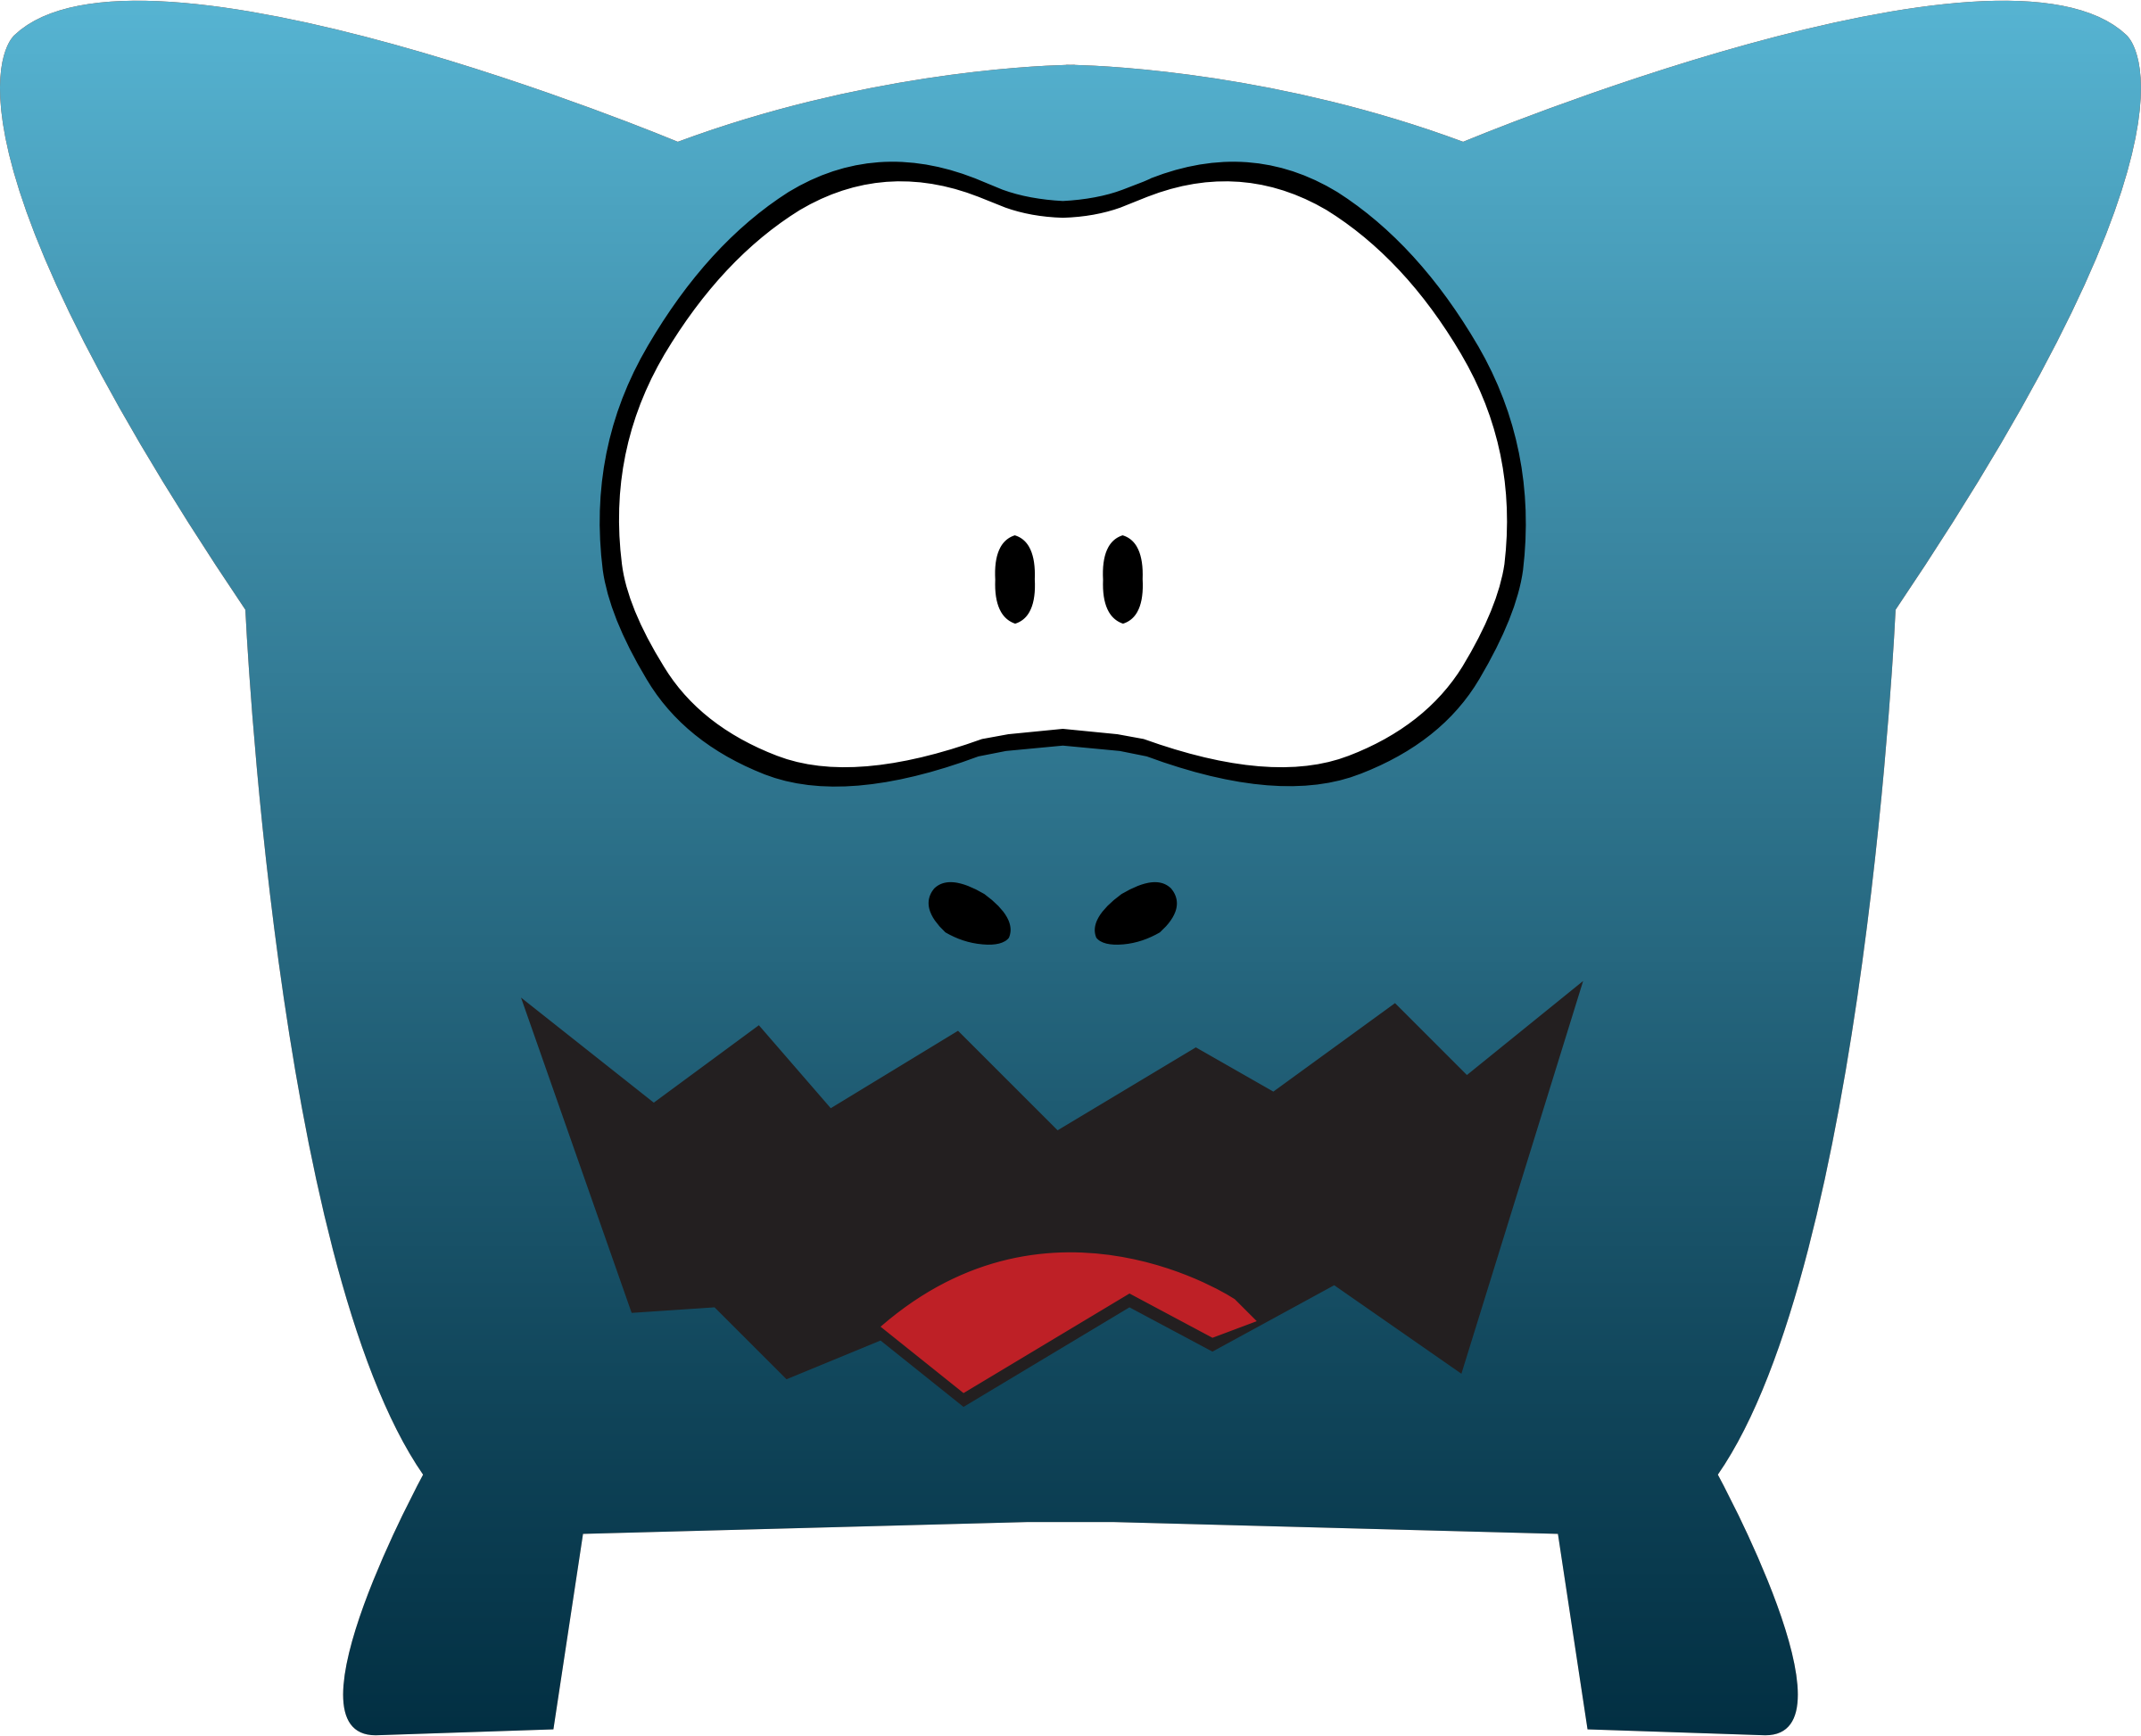 Monsters Cartoon Design by vectorsme